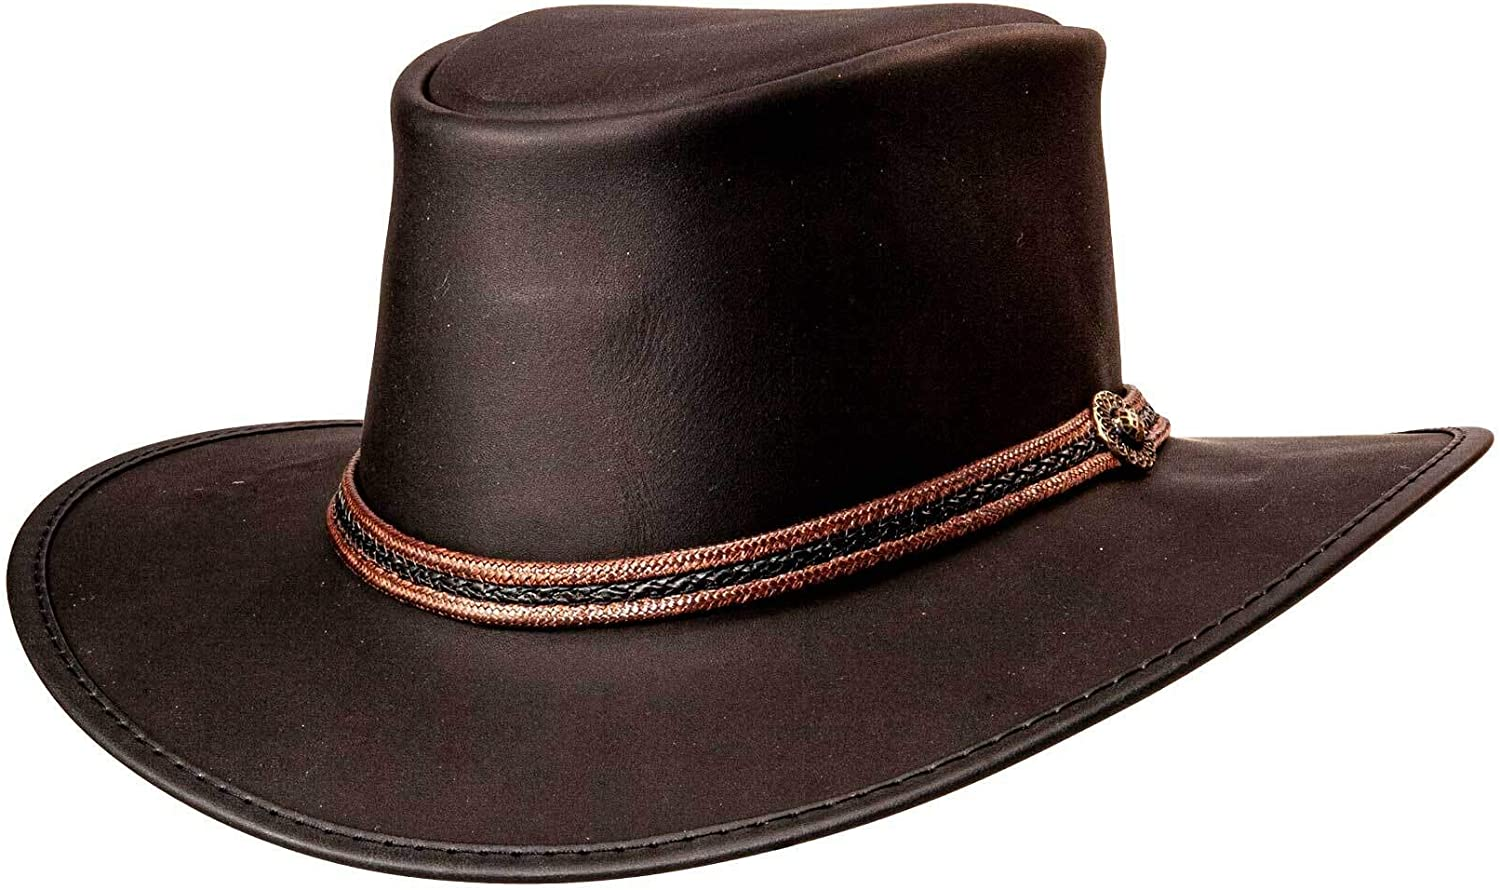 American Hat Makers Midnight Rider Bravo Outback Leather Hat for Men and Women — Handcrafted